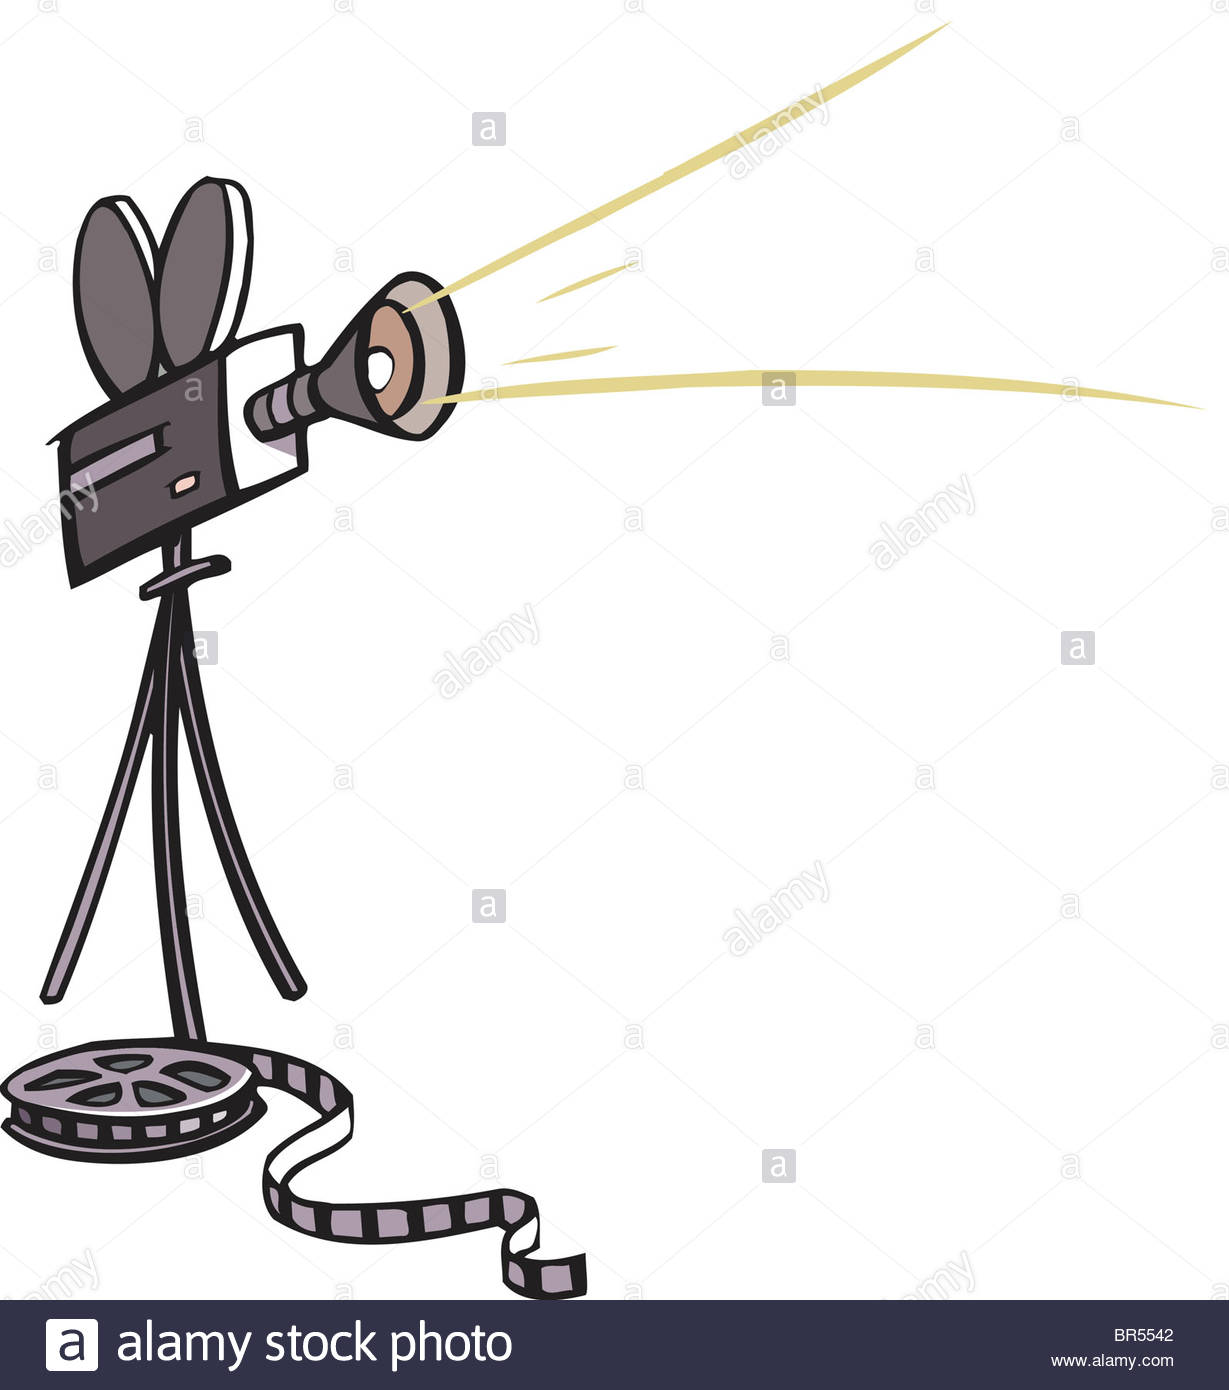 1229x1390 Drawing Of A Movie Camera And Film Stock Photo, Royalty Free Image